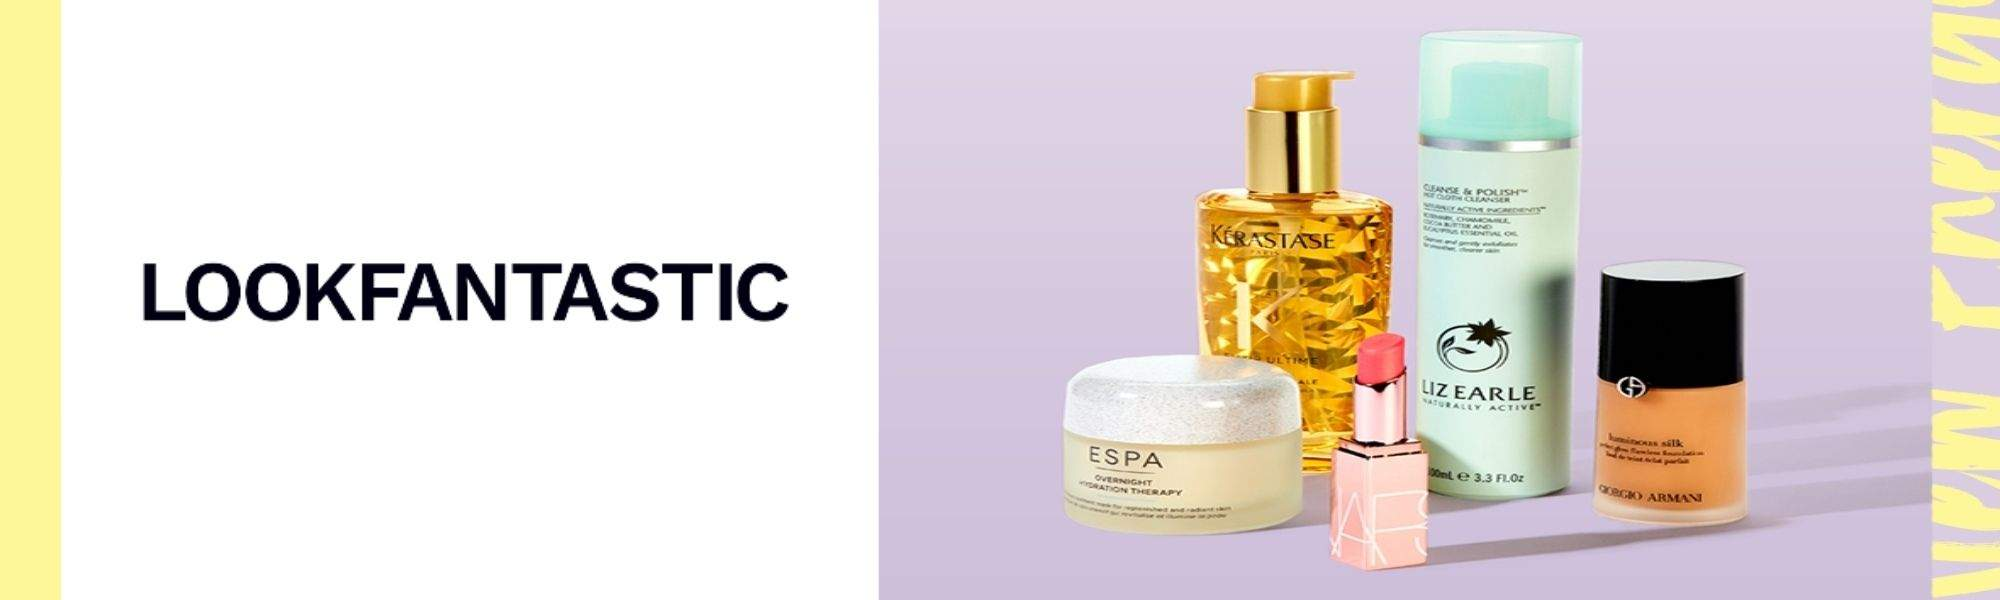 Family & Lifestyle FAMILY PASS MEMBERS ONLY: Look Fantastic UK's No.1 Beauty Retailer, 22% Off